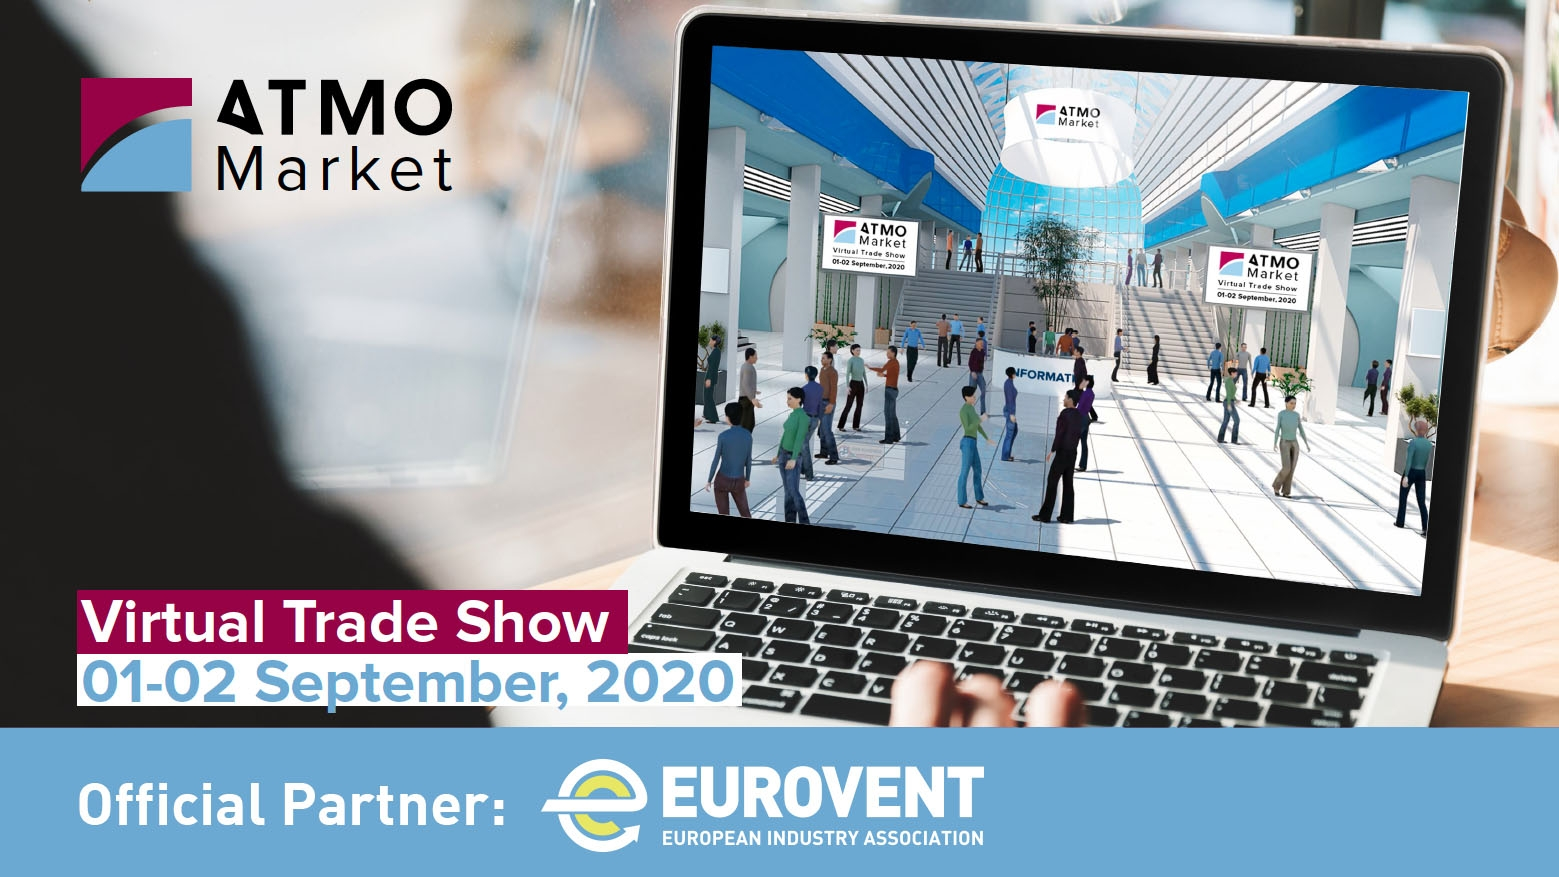 2020 - Eurovent joins shecco's Virtual Trade Show